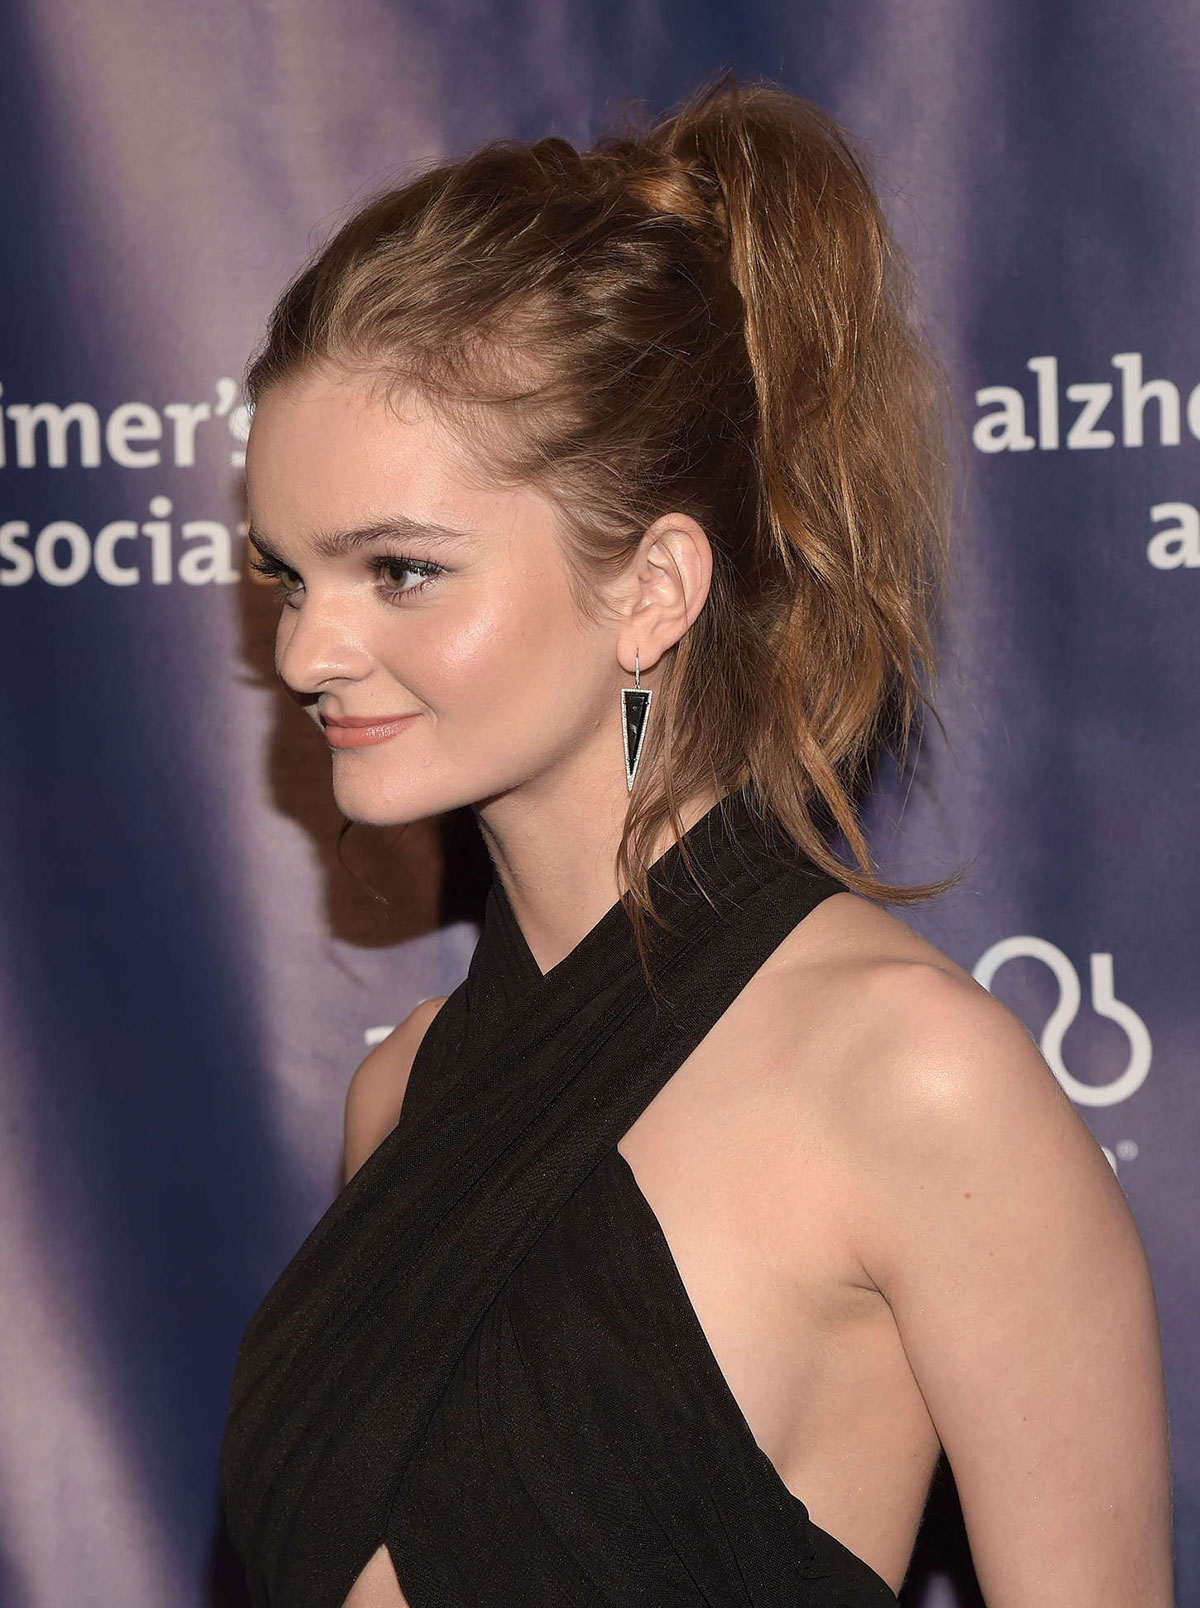 kerris dorsey instagramkerris dorsey – the show, kerris dorsey the show скачать, kerris dorsey – just enjoy the show, kerris dorsey the show chords, kerris dorsey instagram, kerris dorsey the show lyrics, kerris dorsey dylan minnette, kerris dorsey sunny, kerris dorsey, kerris dorsey height, kerris dorsey the show mp3, kerris dorsey moneyball, kerris dorsey ray donovan, kerris dorsey wiki, kerris dorsey facebook, kerris dorsey twitter, kerris dorsey sister rosetta, kerris dorsey wikipedia, kerris dorsey singing, kerris dorsey parents